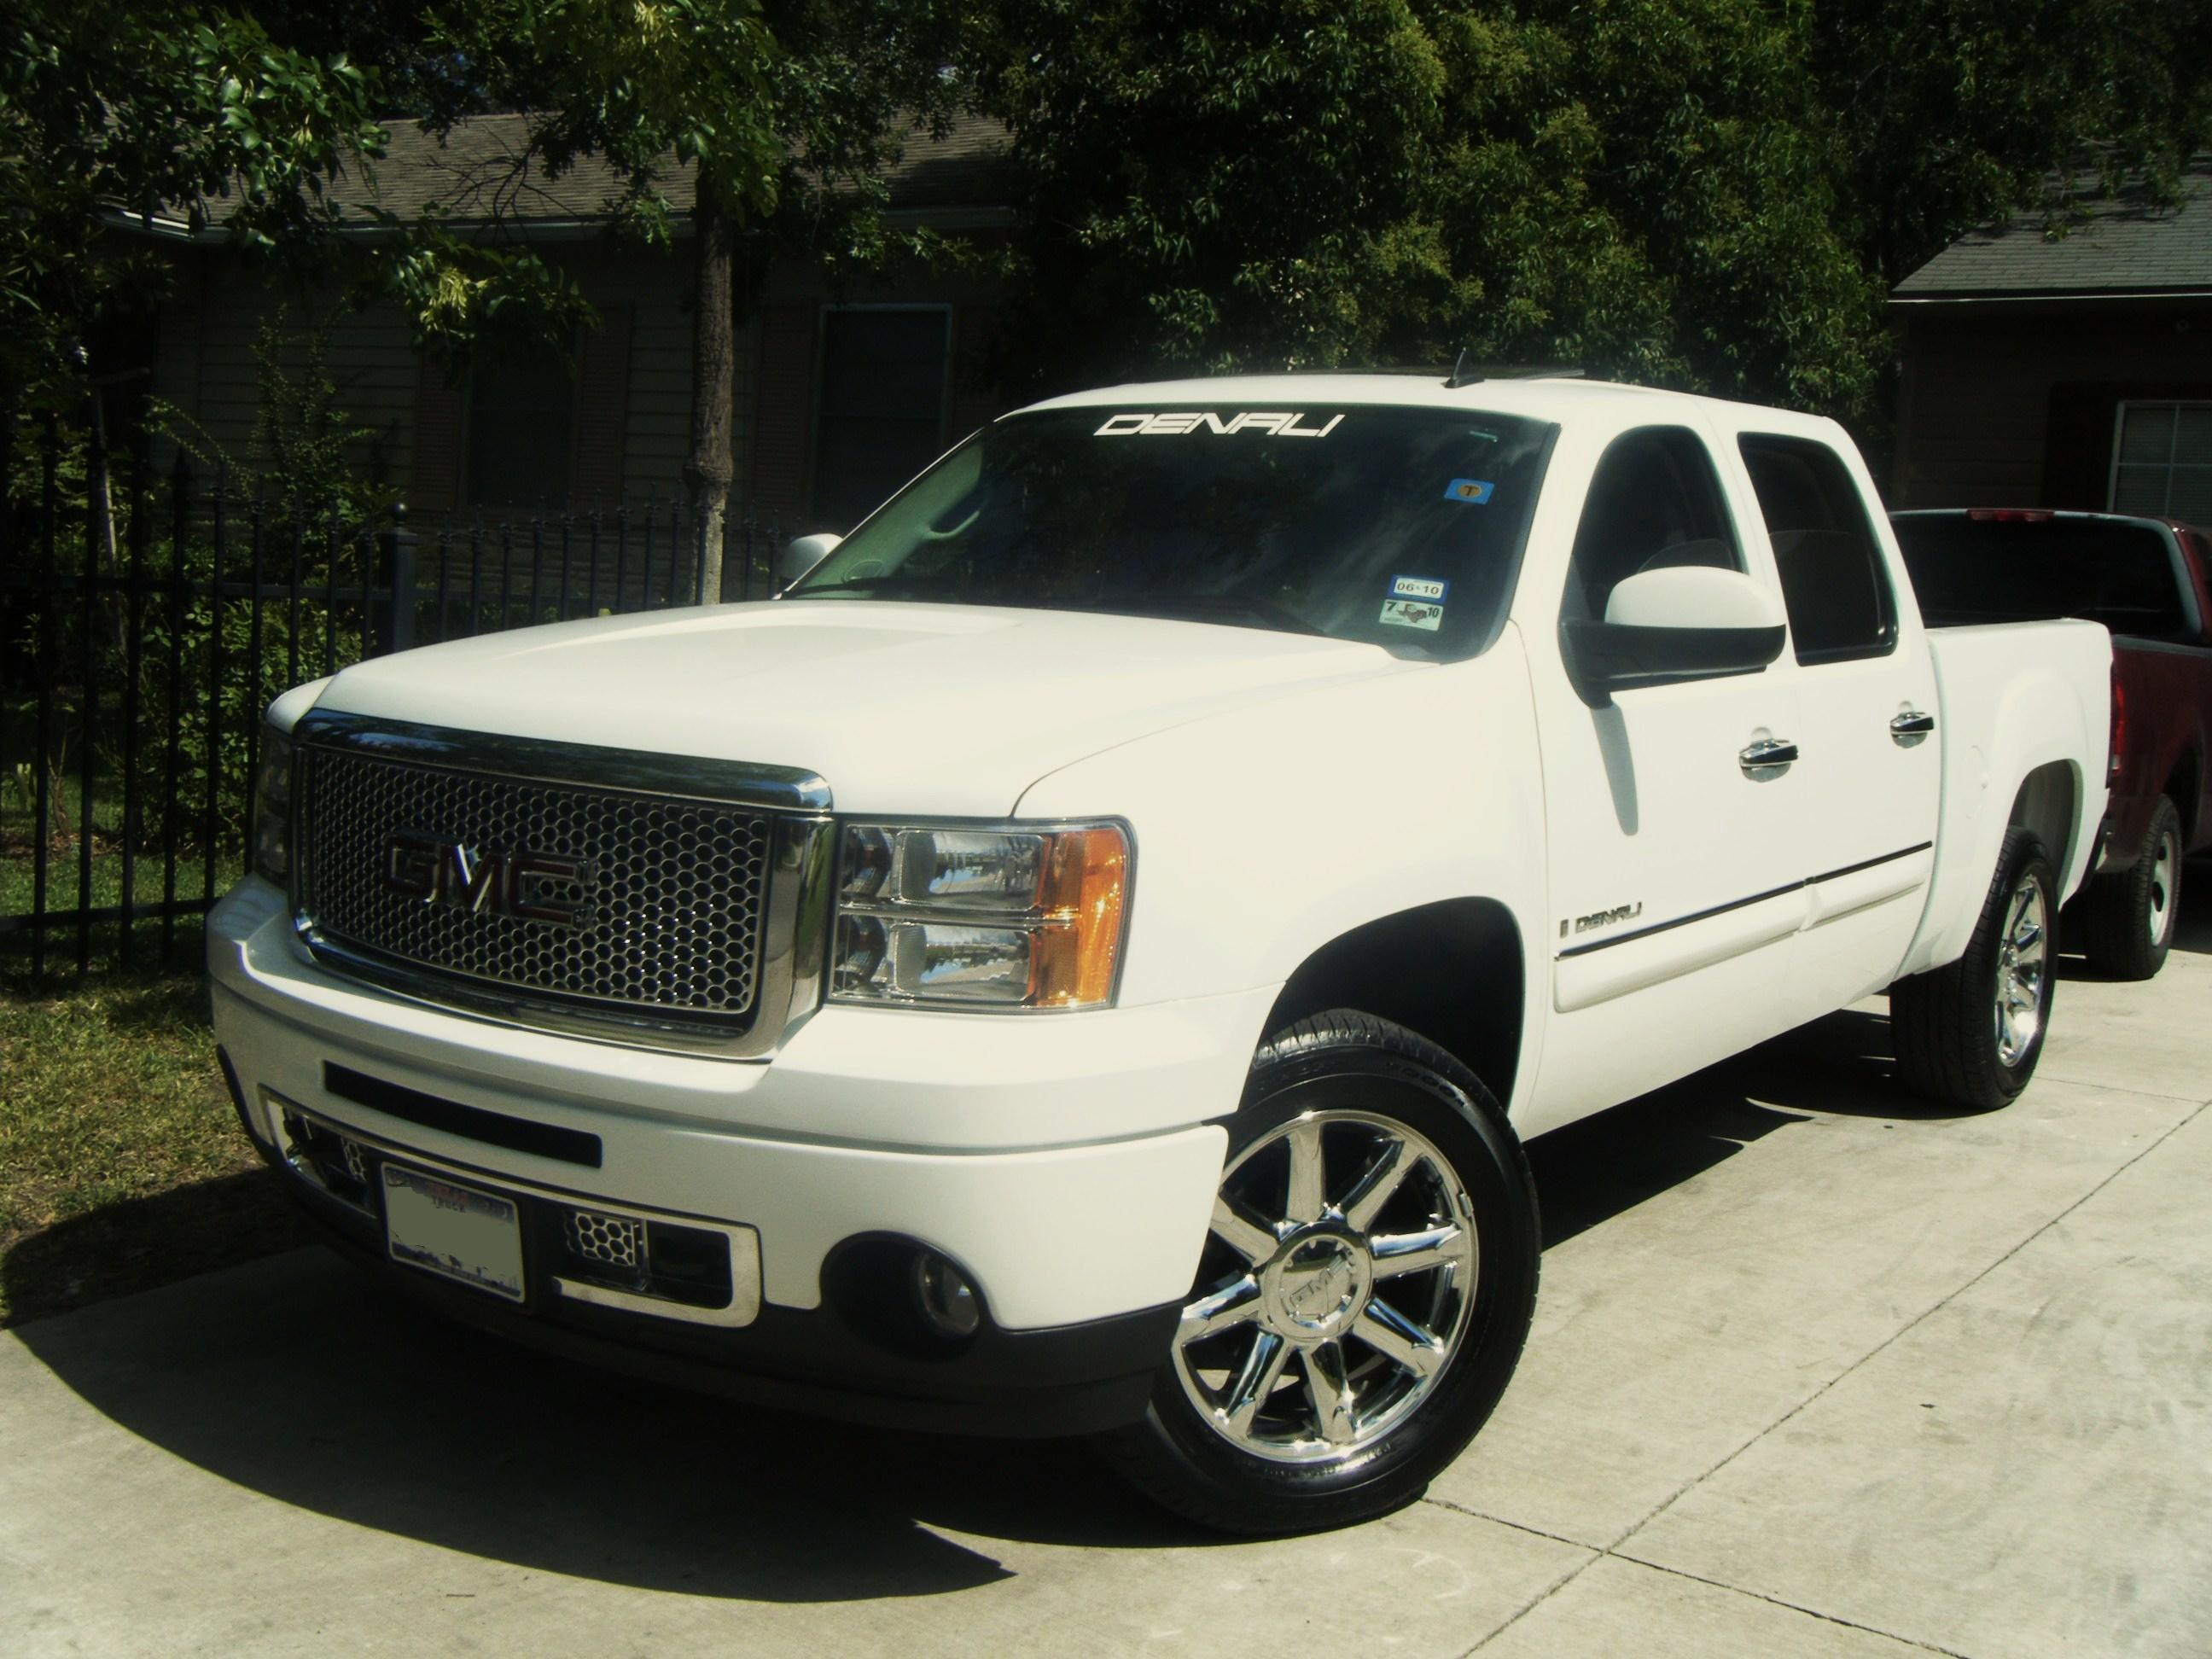 07sierradenali 2007 gmc sierra 1500 crew cabdenali pickup 4d 5 3 4 ft specs photos. Black Bedroom Furniture Sets. Home Design Ideas